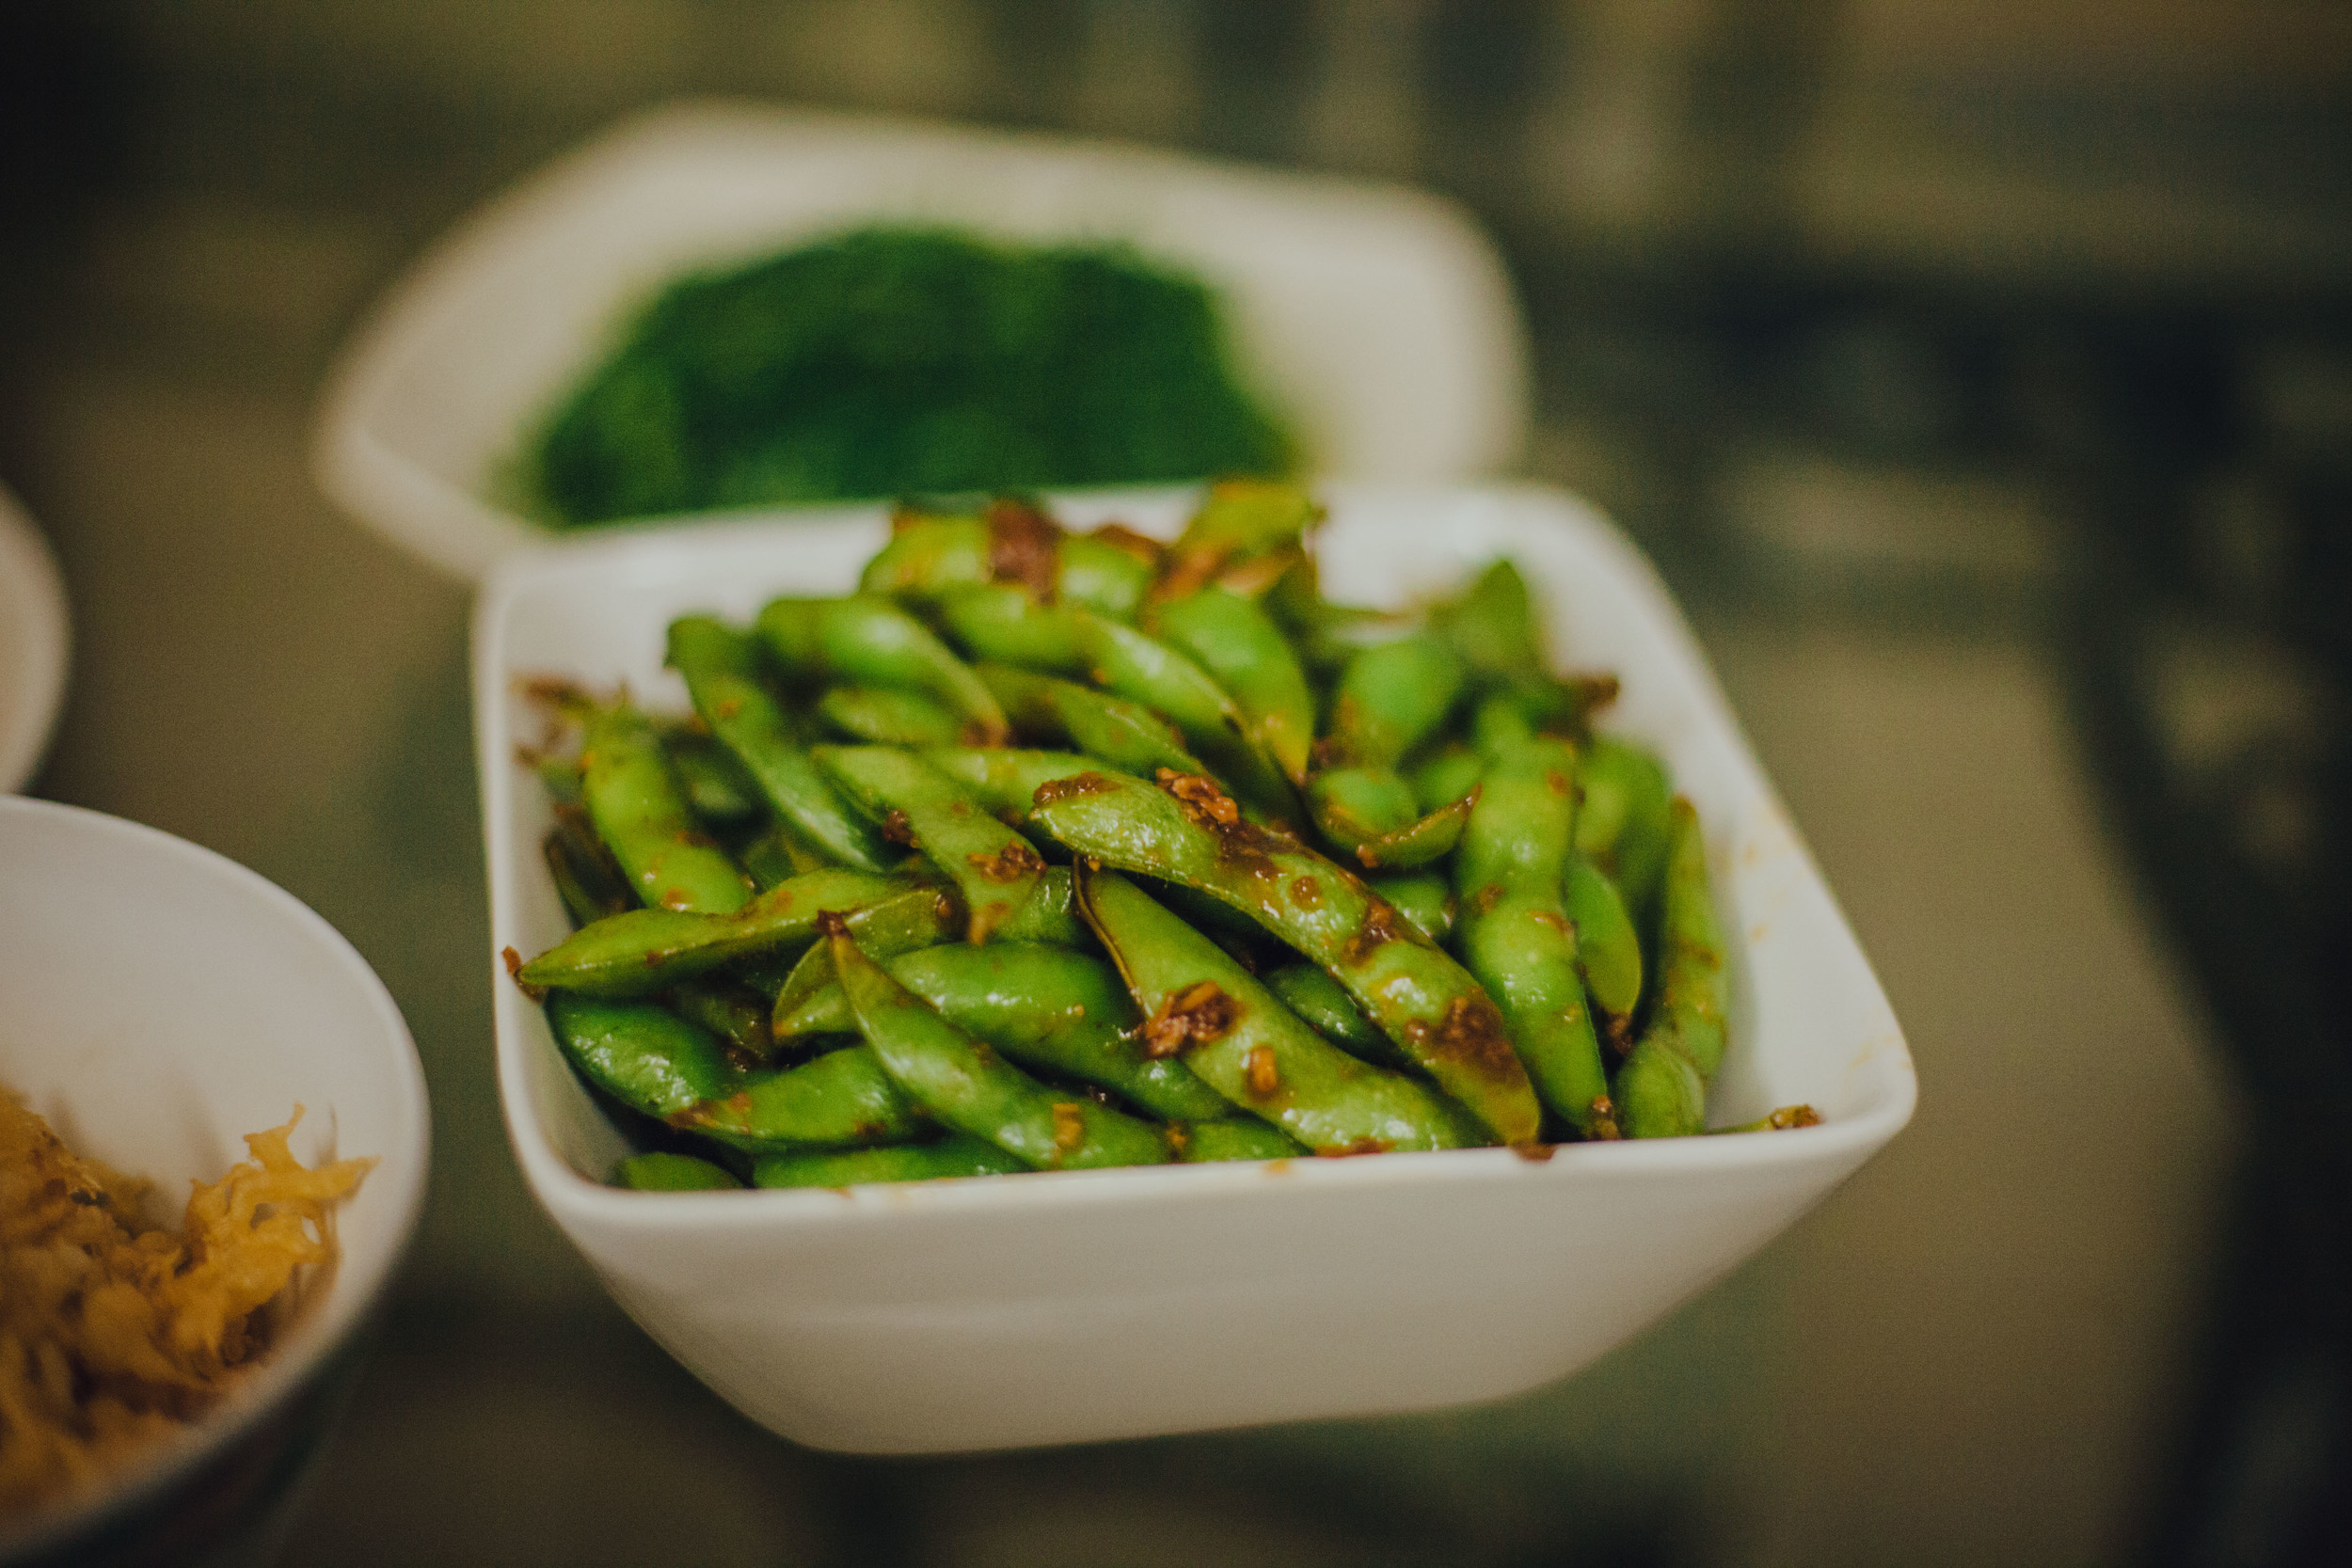 Steamed edamame sauteed with minced garlic & a special soy sauce blend.